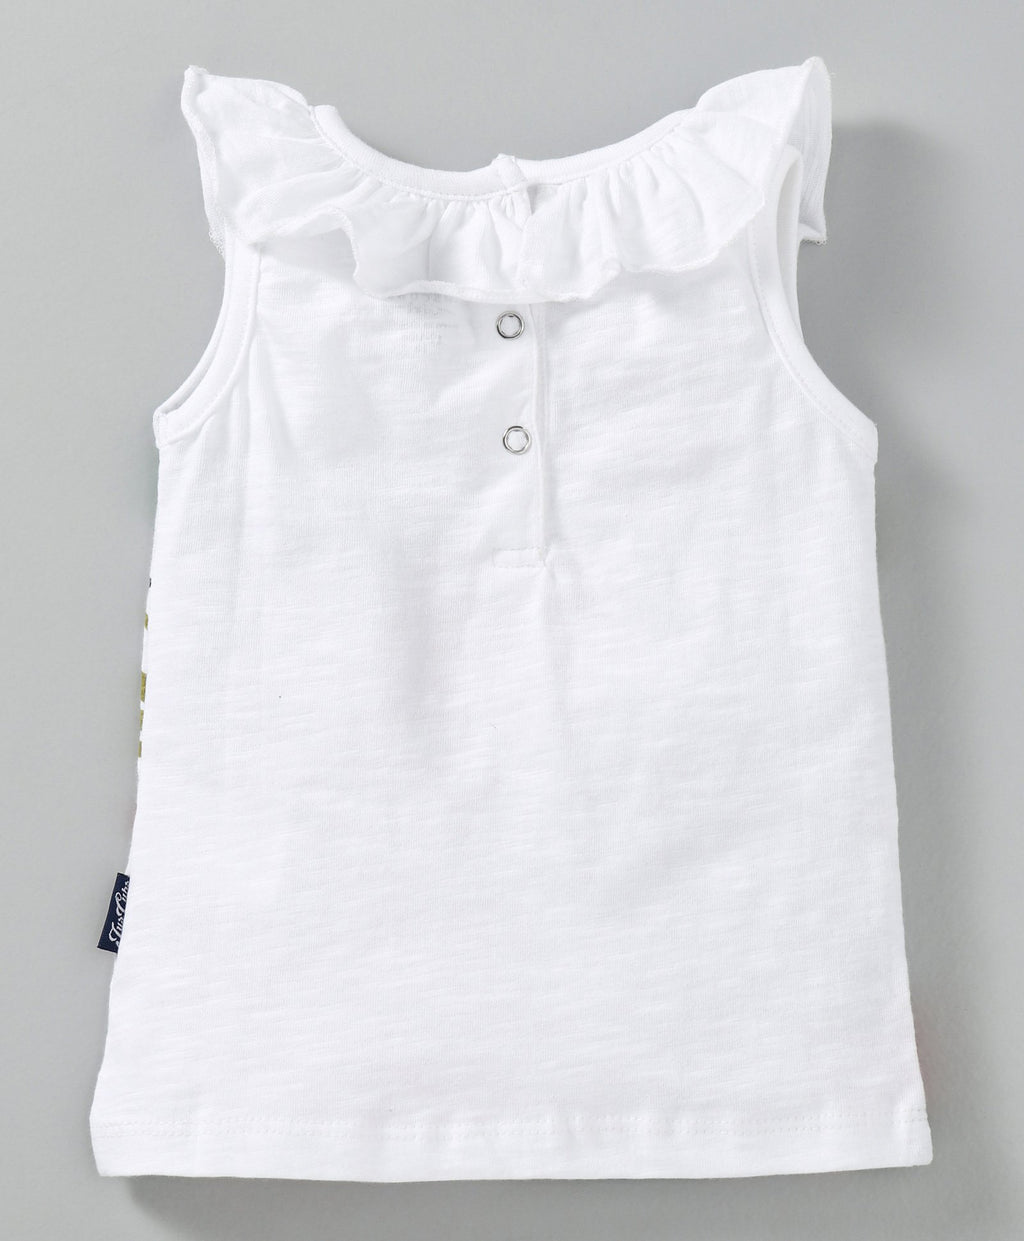 JusCubs Girls  Sleeveless Tee - White